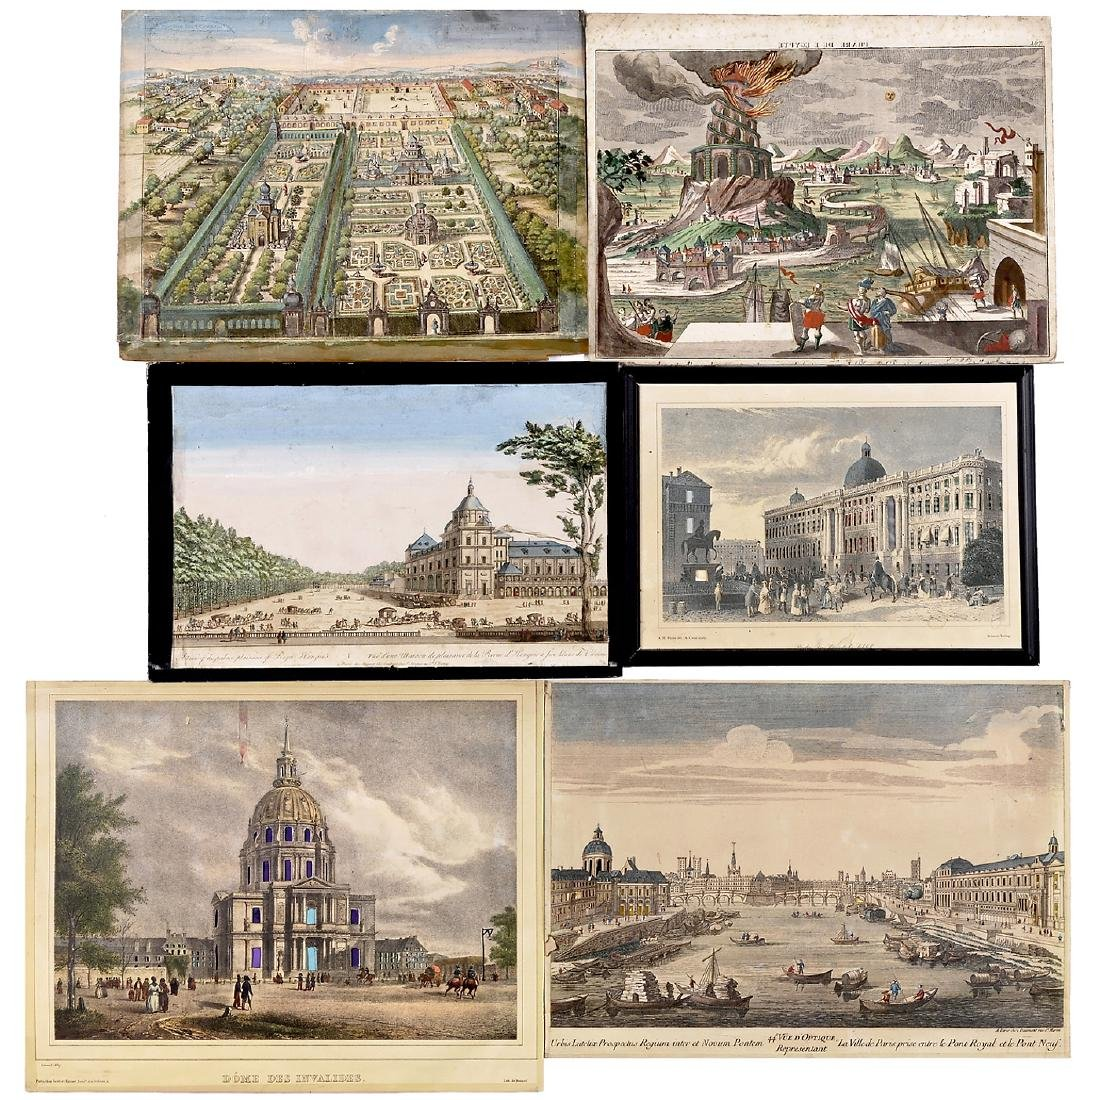 6 Day-and-Night Vues d'Optique, c. 1800-1850